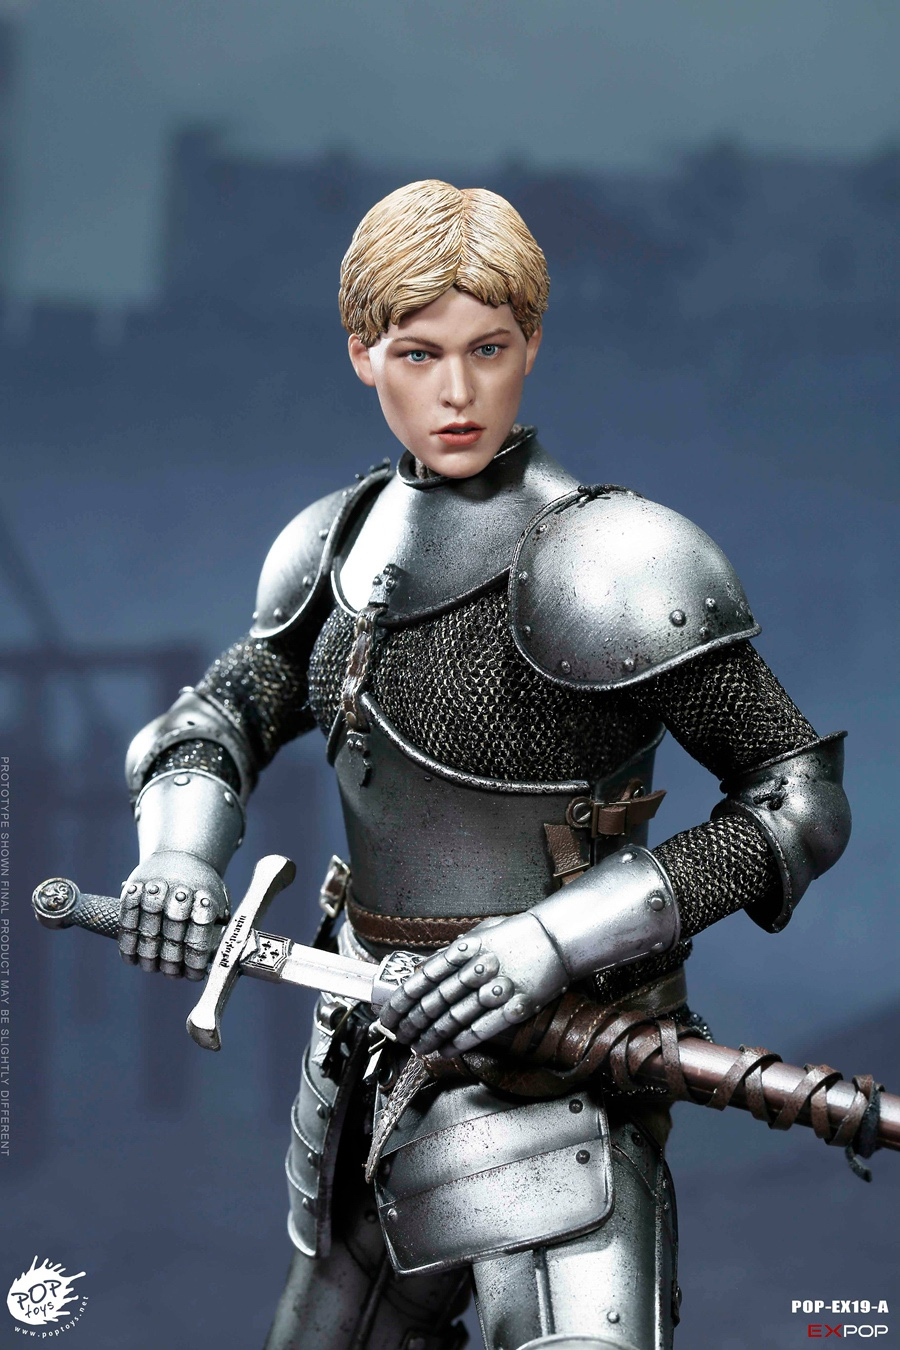 NEW PRODUCT: POPTOYS New Products: 1/6 St. Knights - Assault Edition & Triumph Edition & Iron Armor (POP-EX19 ABC) 16392110